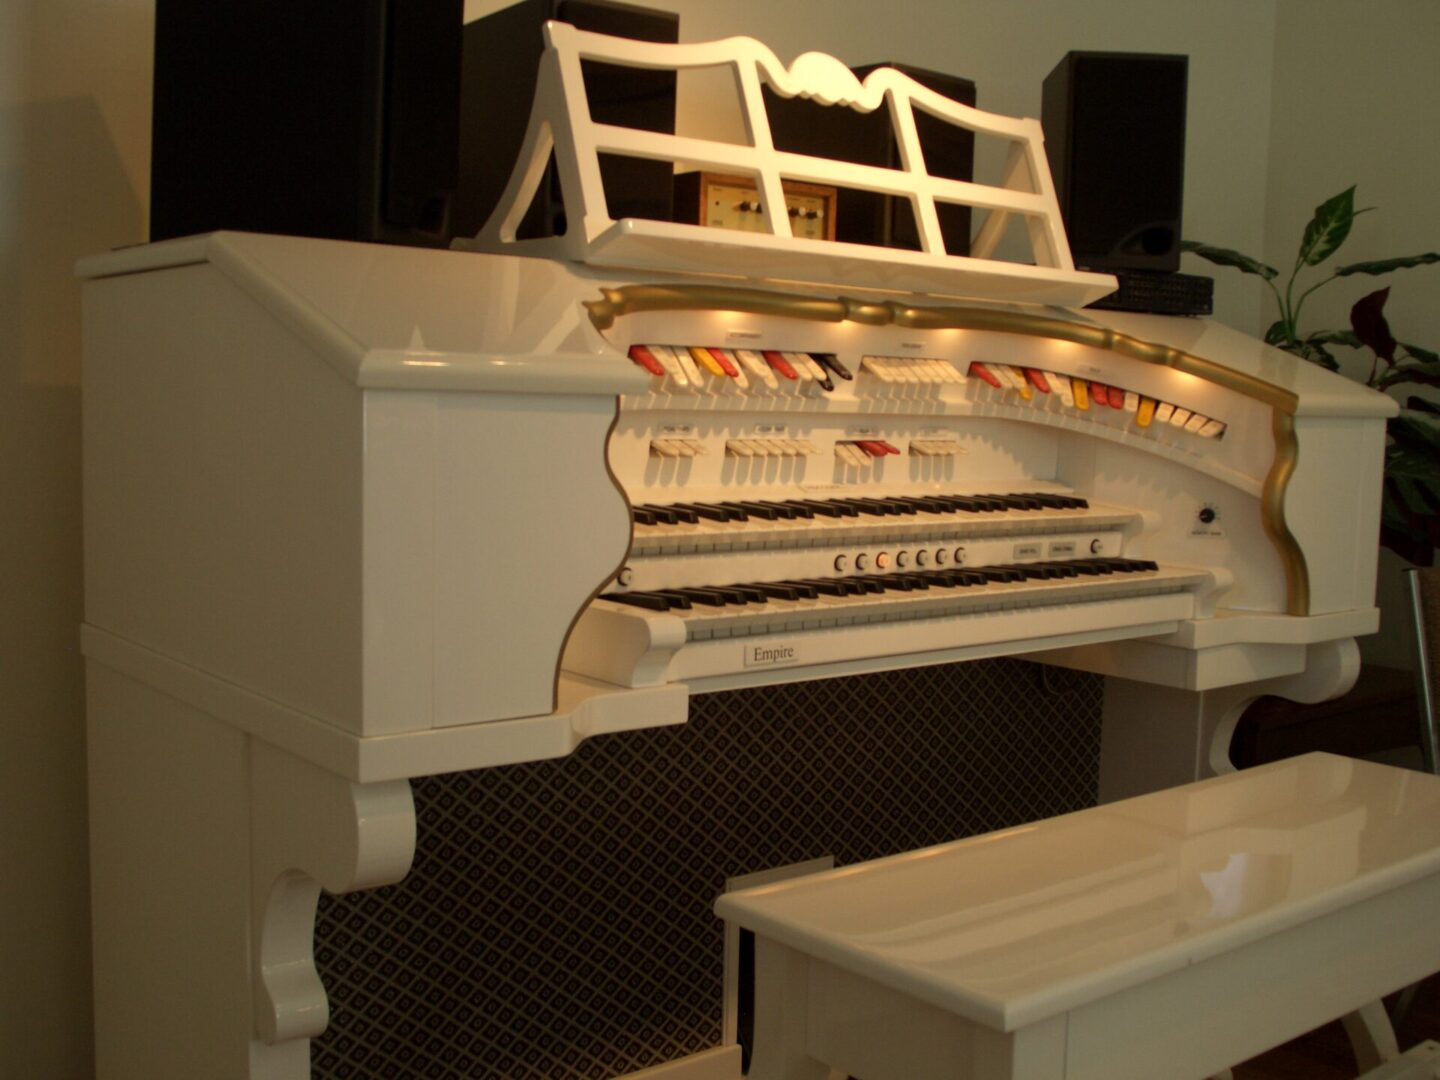 Viscount 'Empire' Theater Organ